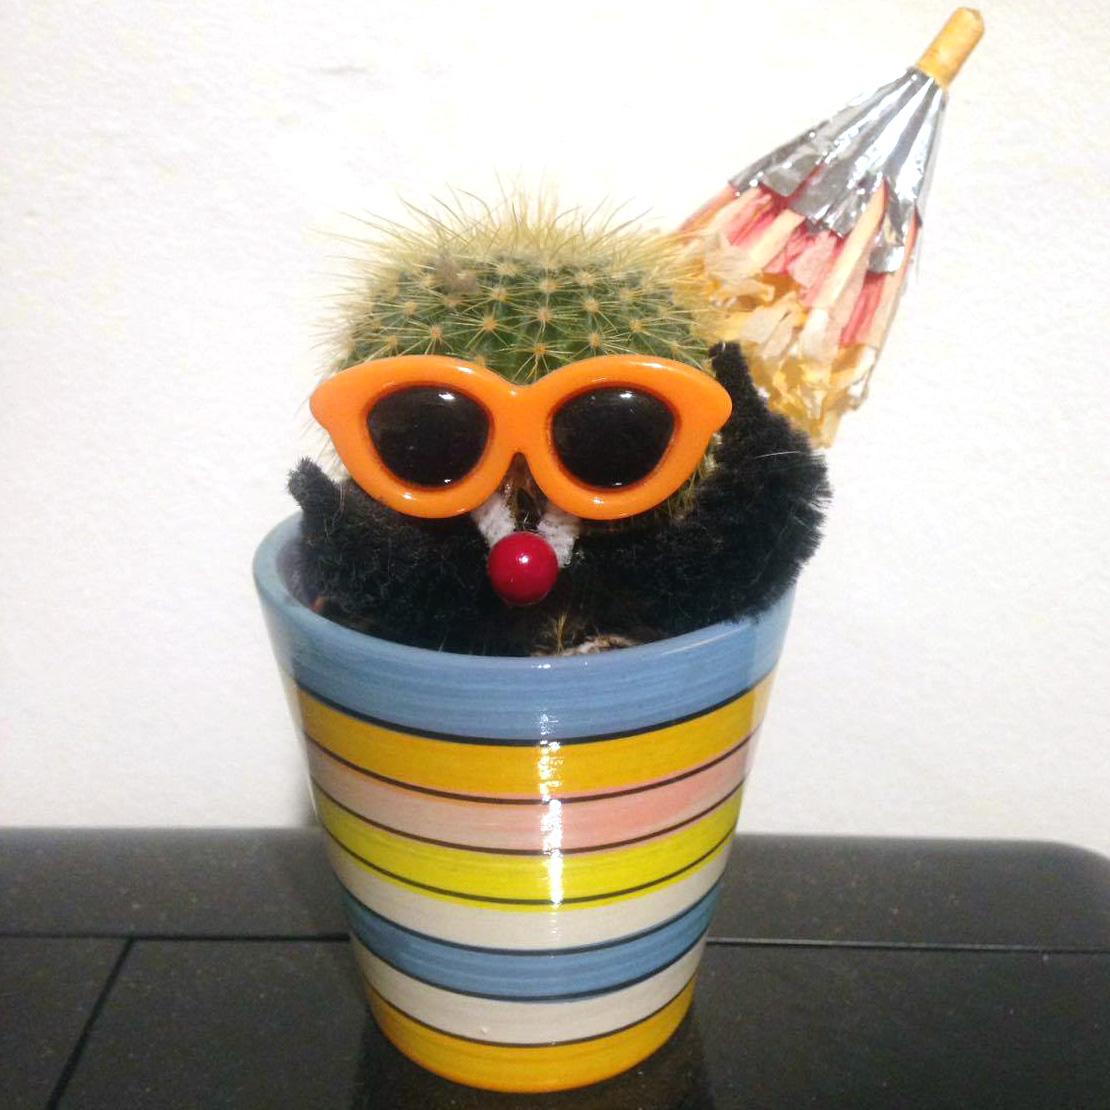 Part Cactus with stripey container and sunglasses.